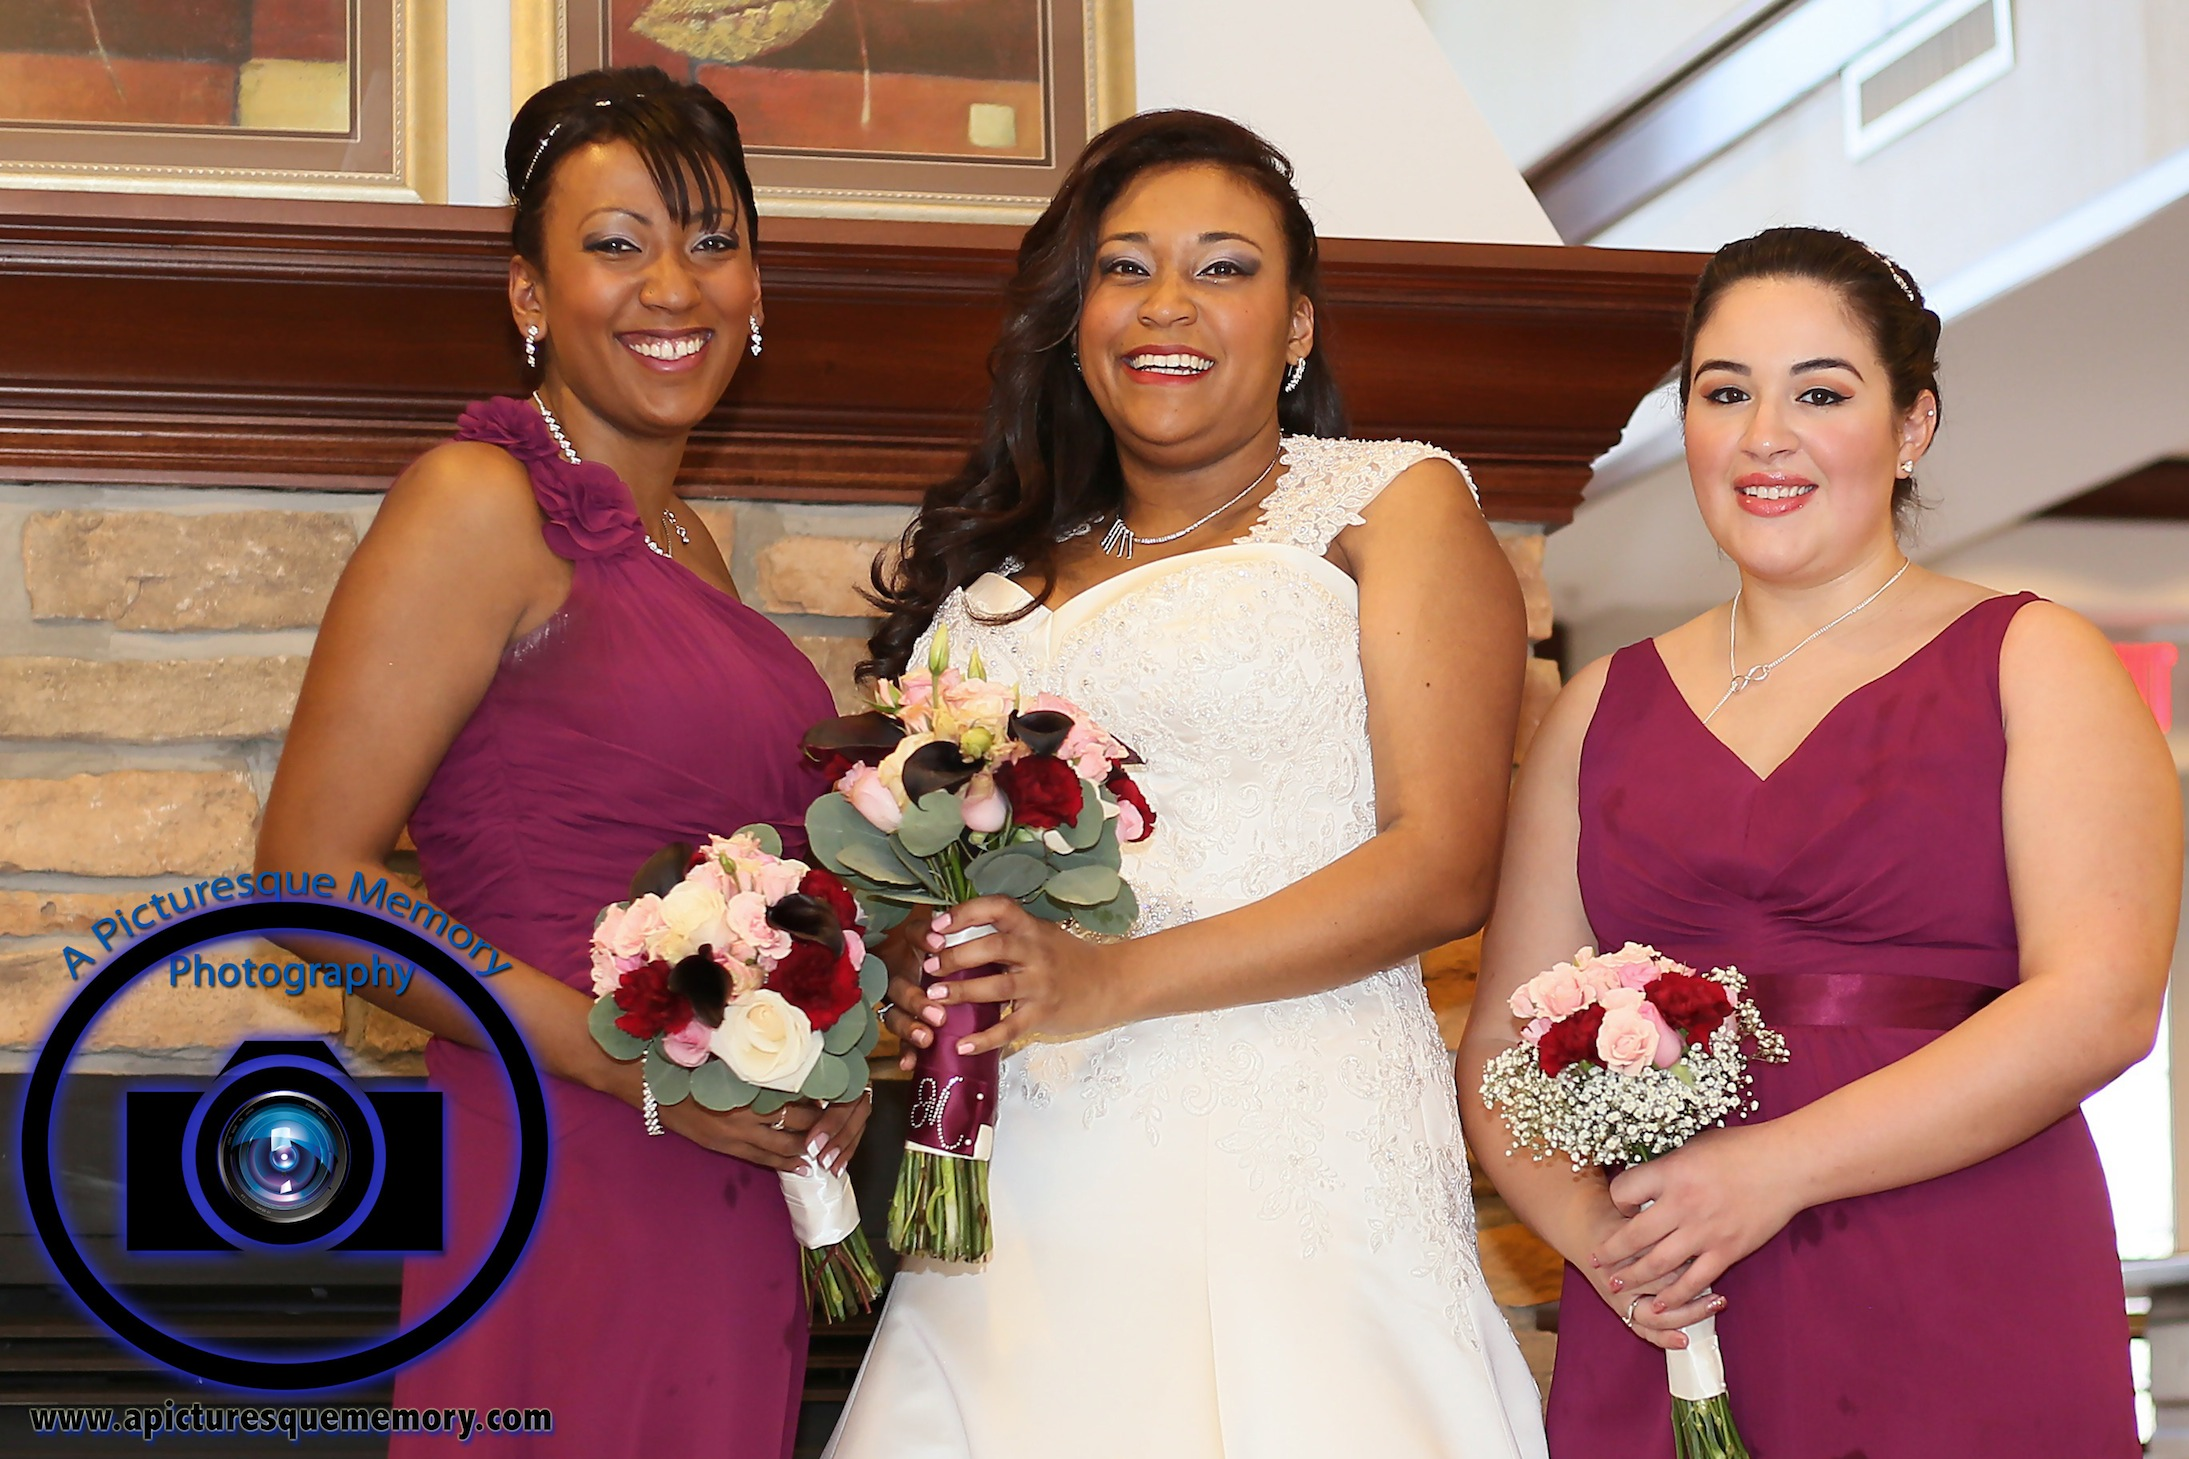 #njwedding, #njweddingphotography, #northbrunswickweddingphotographer#weddingphotos, #apicturesquememoryphotography, #staybridgesuitesweddingphotographer, #bridesbouquet, #bride, #bridesmaids